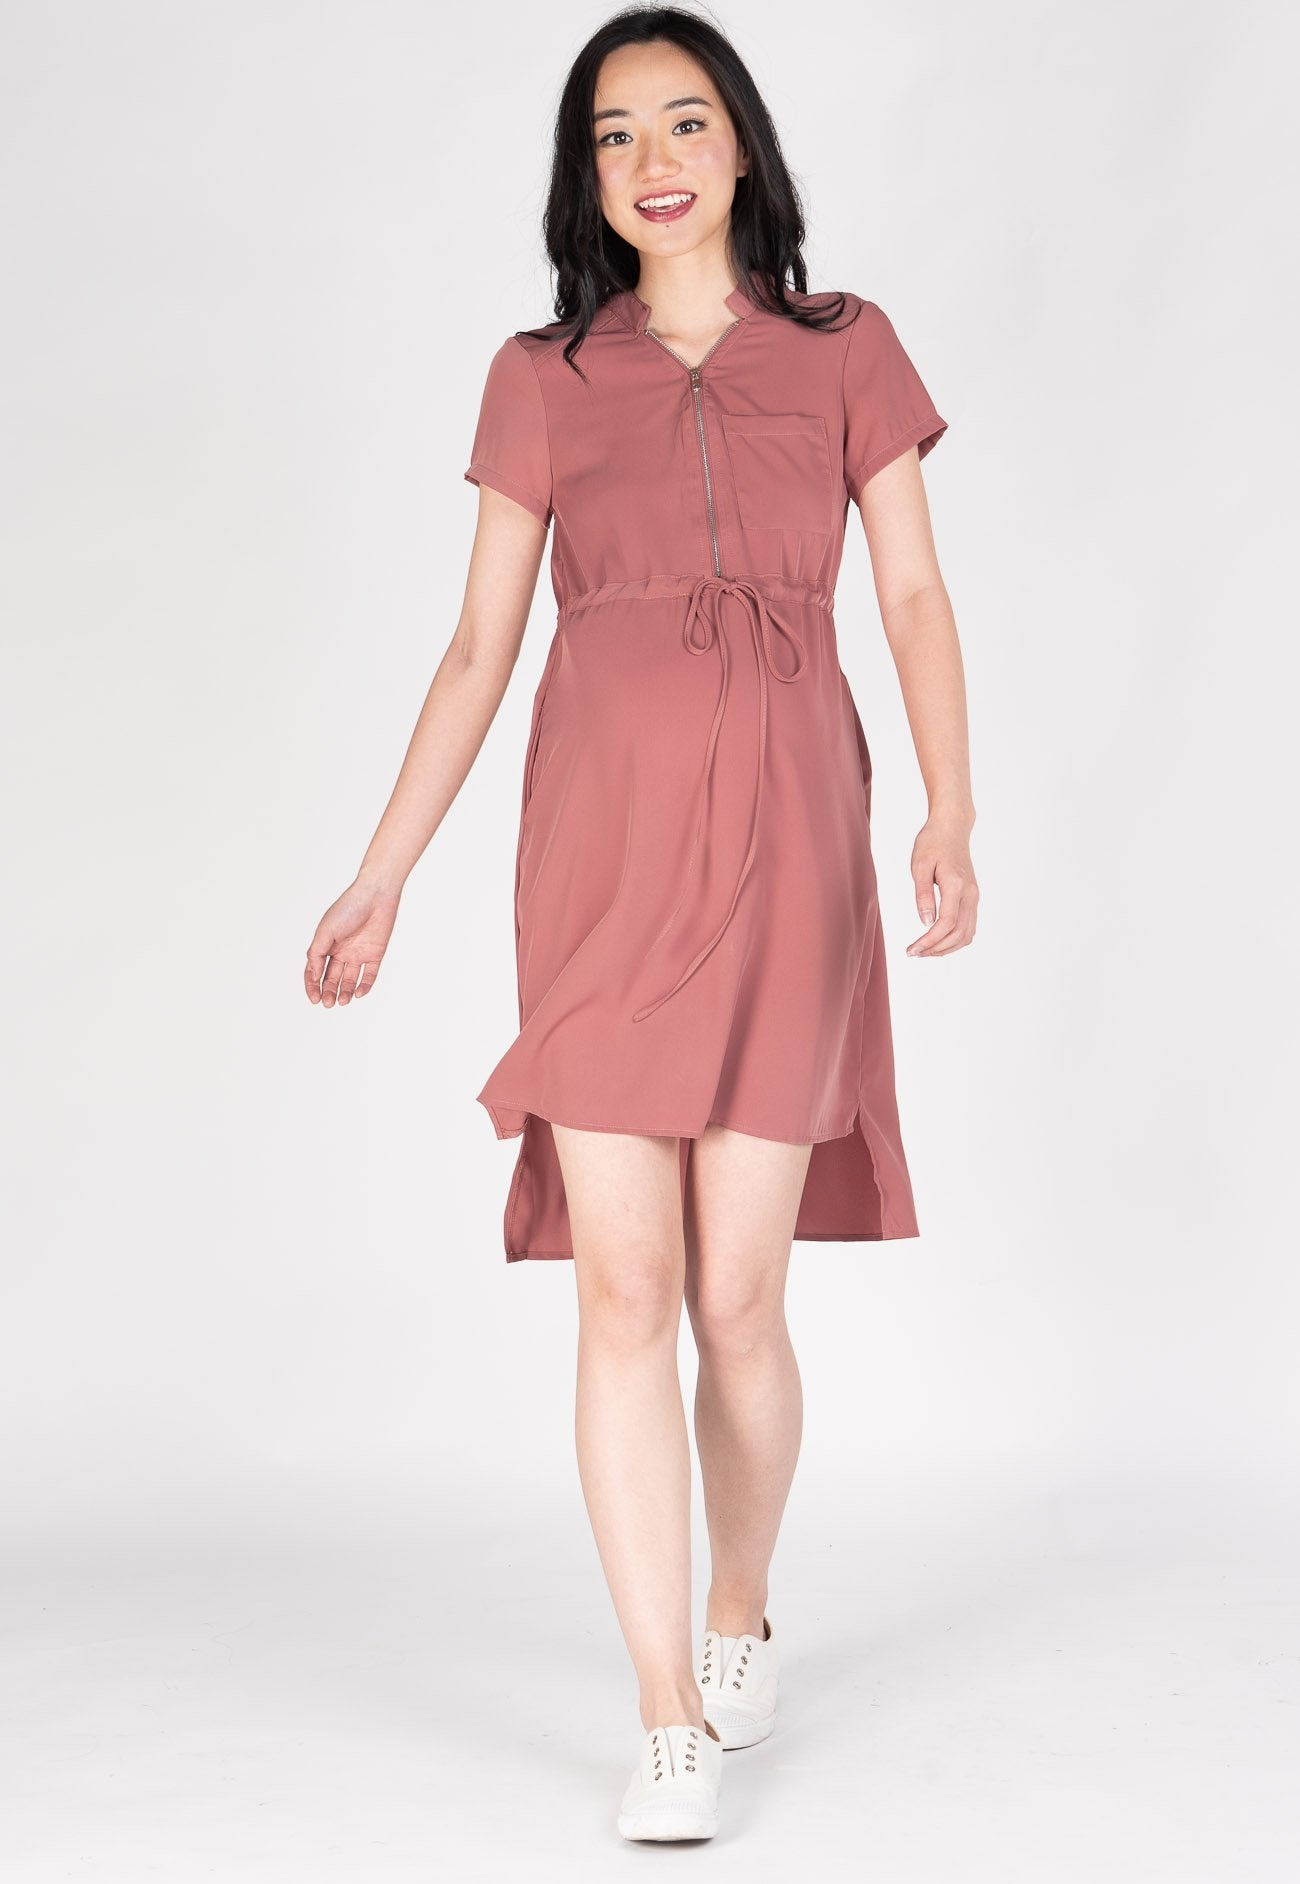 Love And Laughter Nursing Dress in Pink  by Jump Eat Cry - Maternity and nursing wear